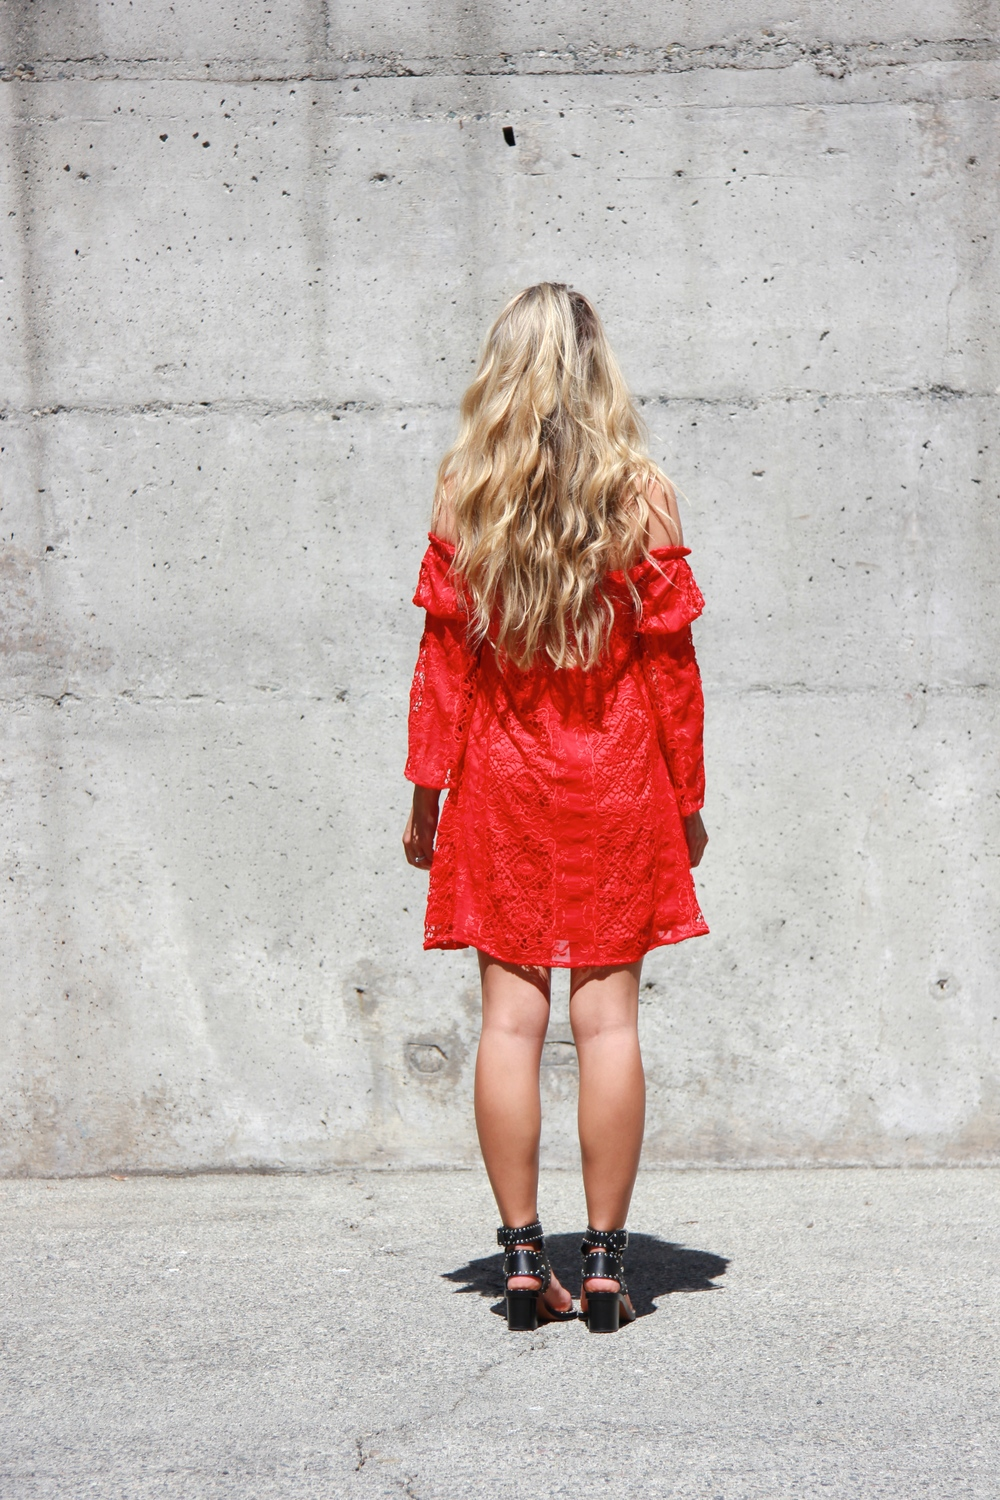 For Love & Lemons Dress via Revolve, Céline Shades, Isabel Marant Sandals